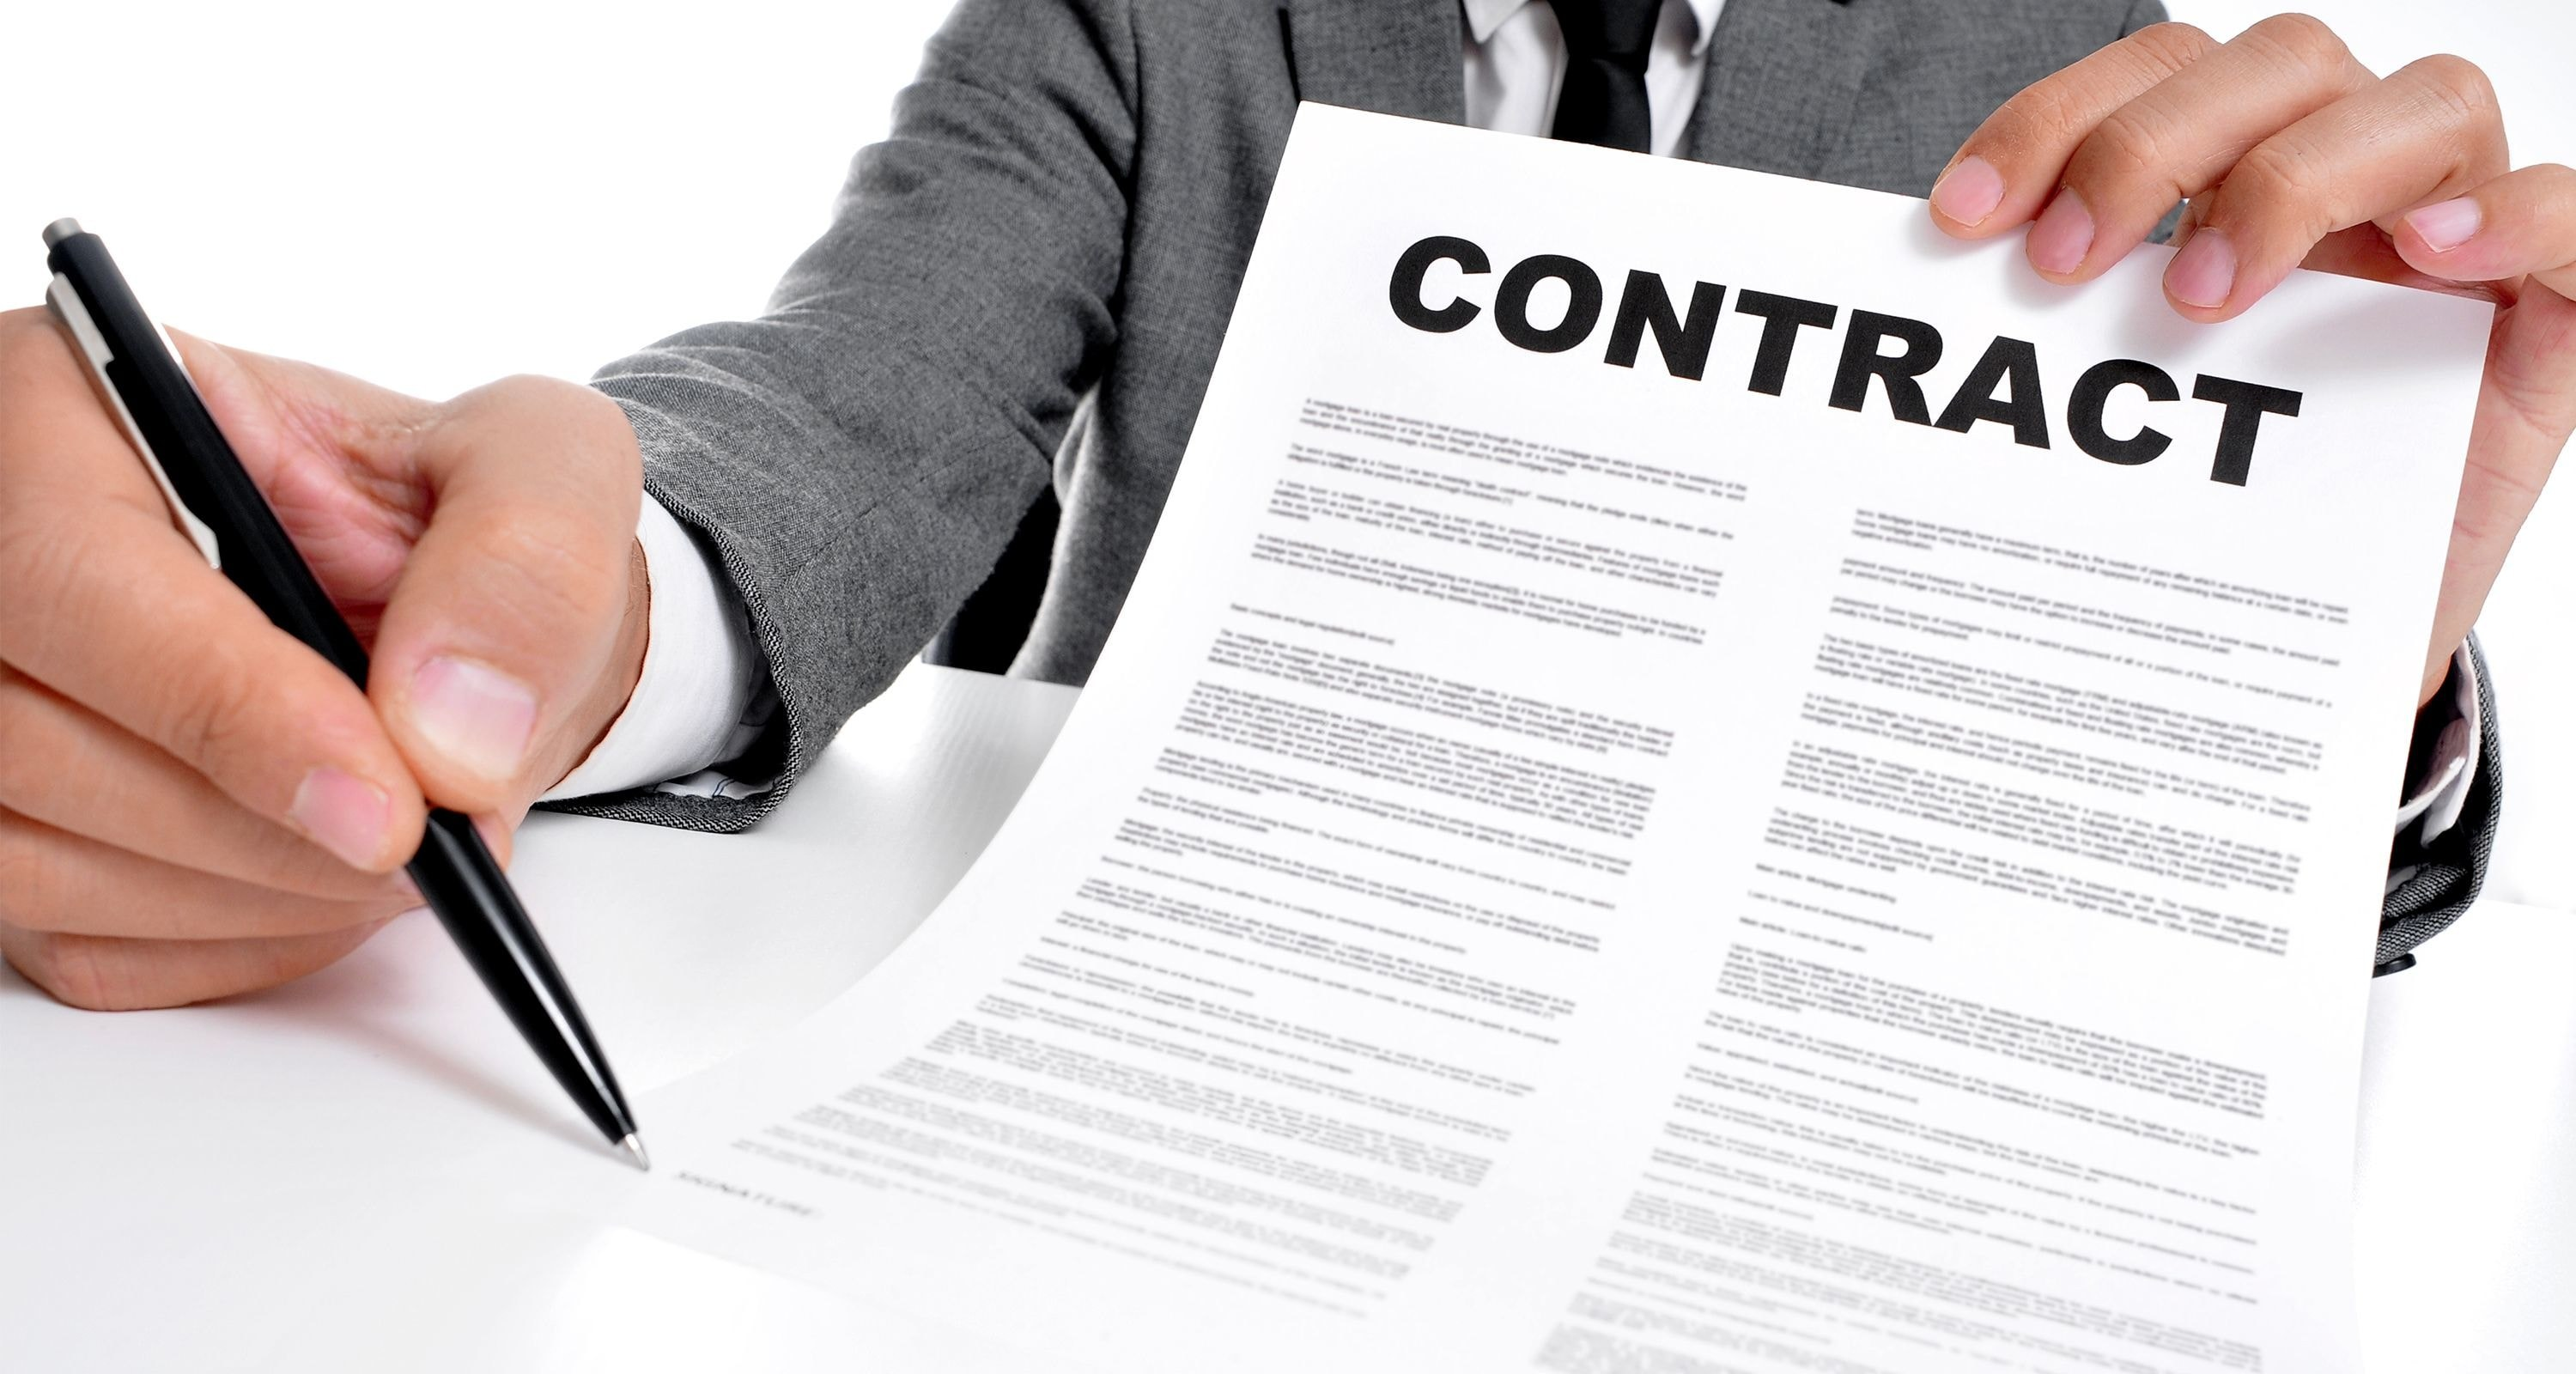 Don't work without the contract